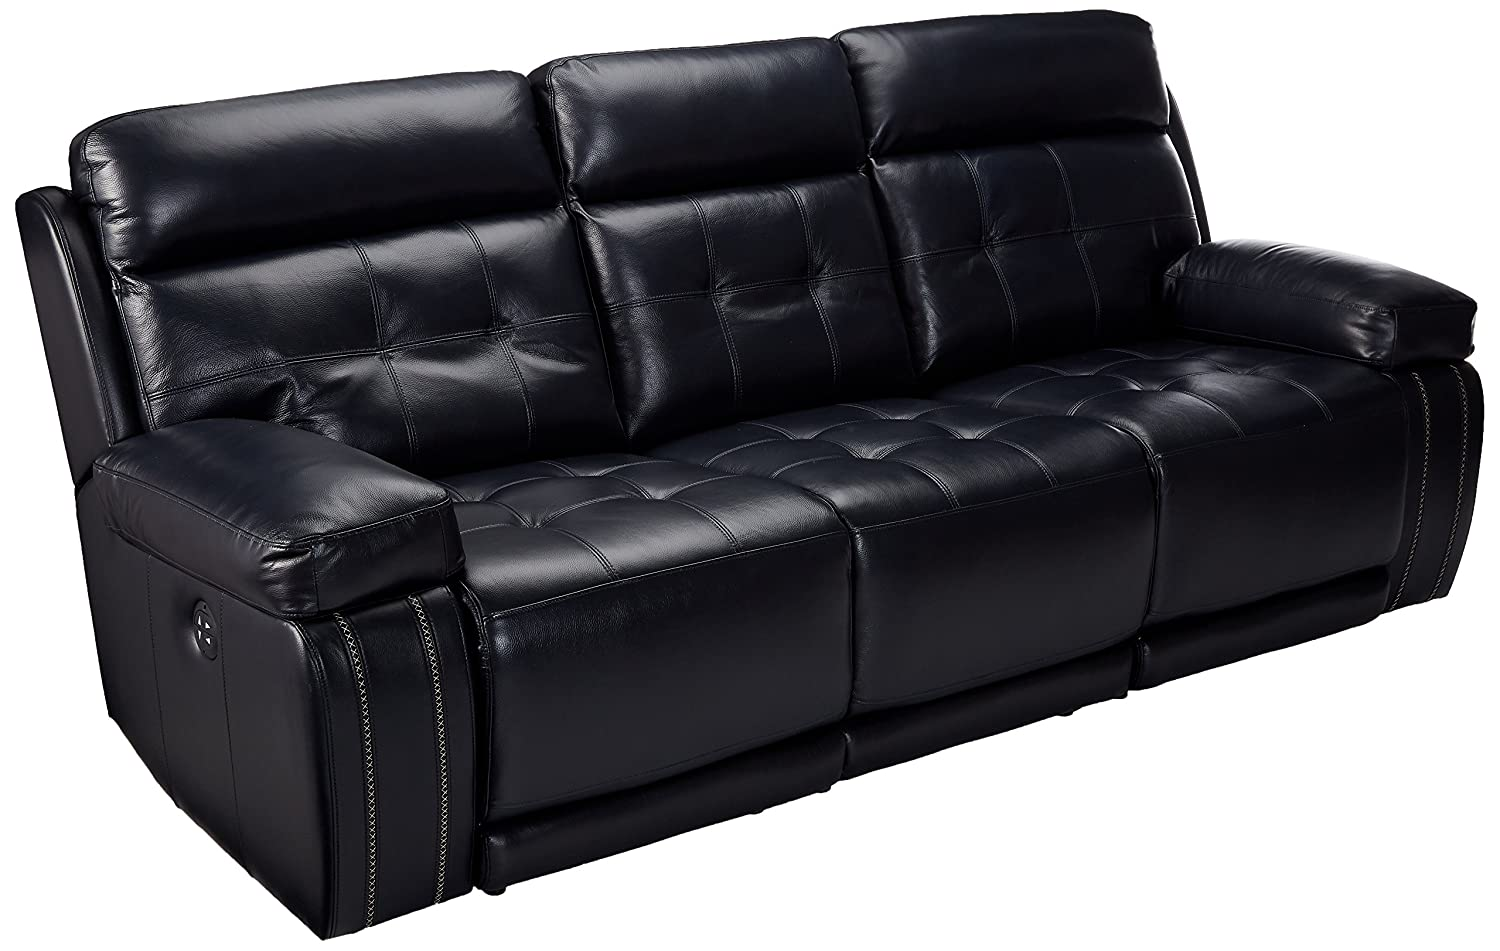 Graford Leather Power Sofa w/Adjustable Headrest